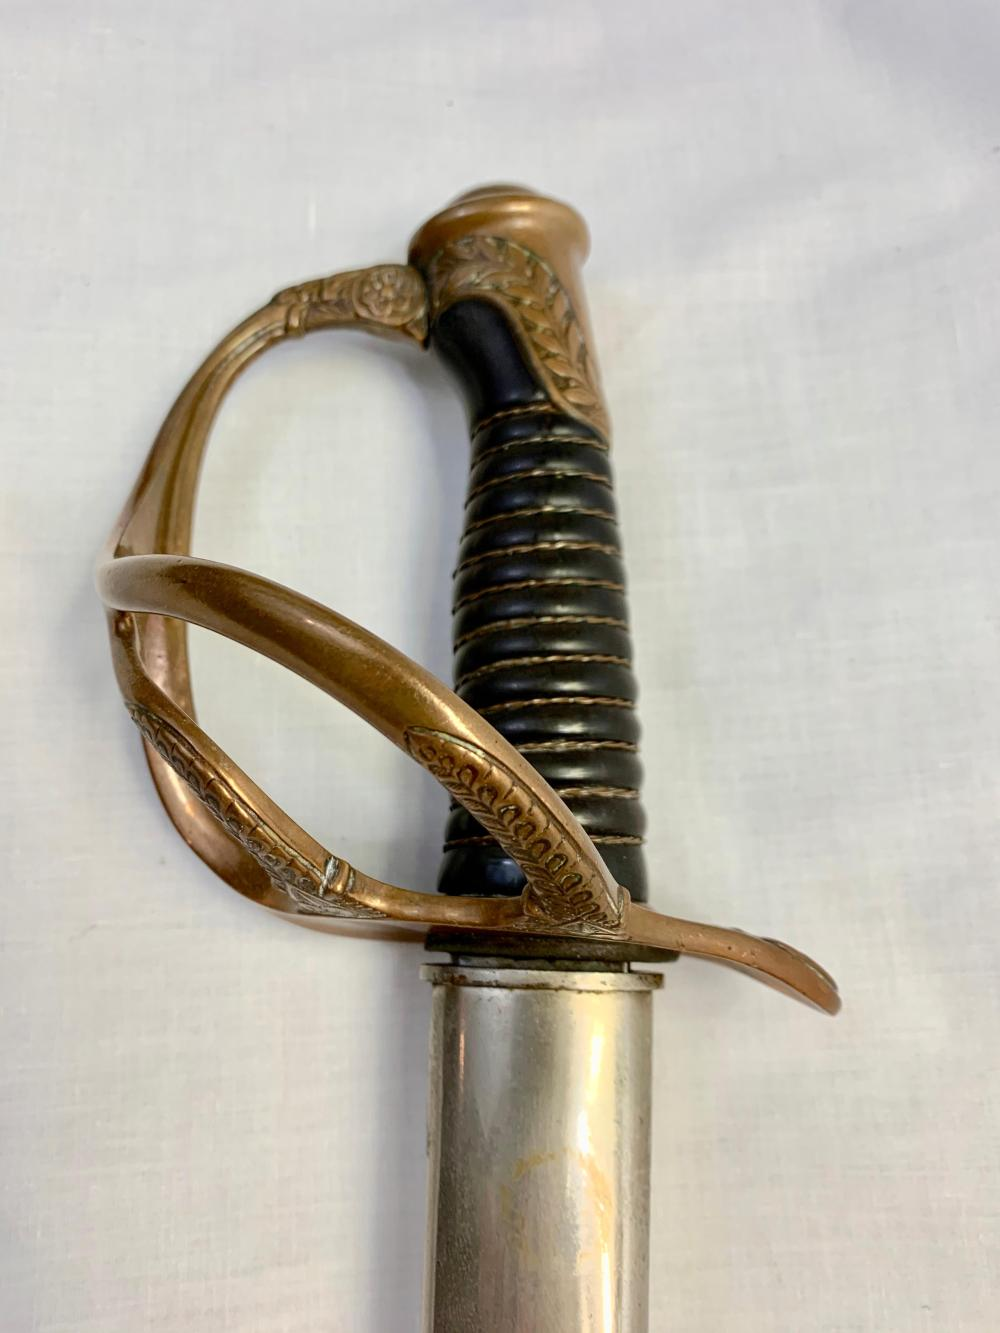 French Cavalry Officers Sword